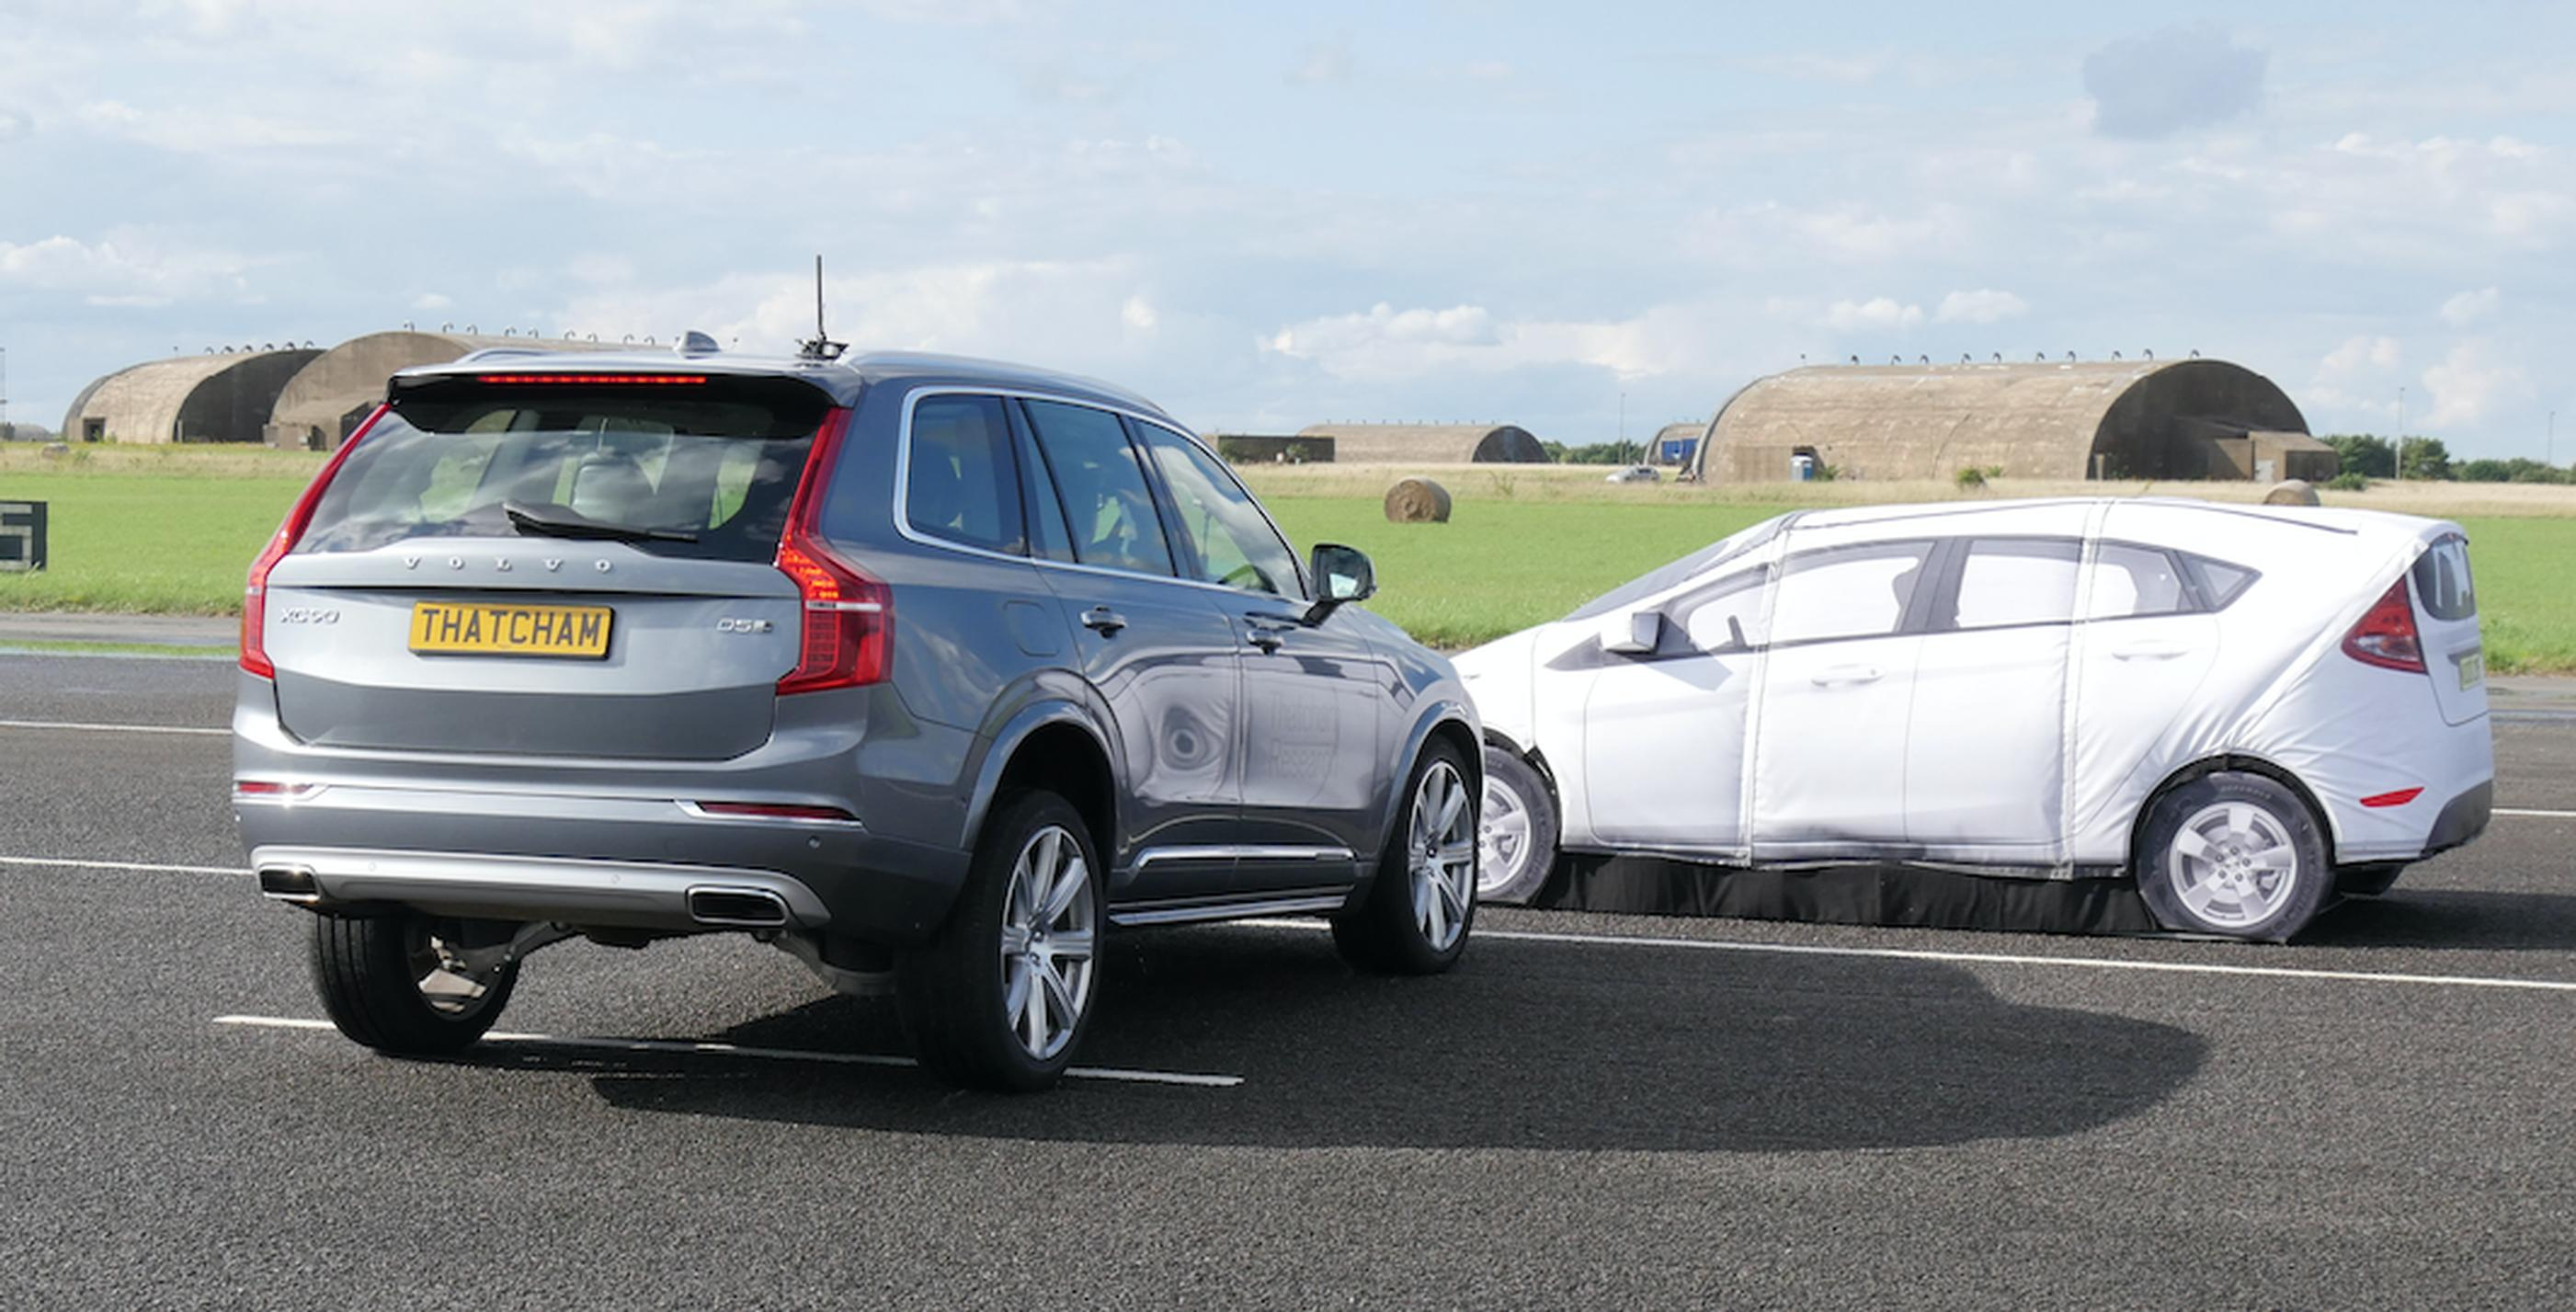 Euro NCAP cross traffic test conducted by Thatcham Research